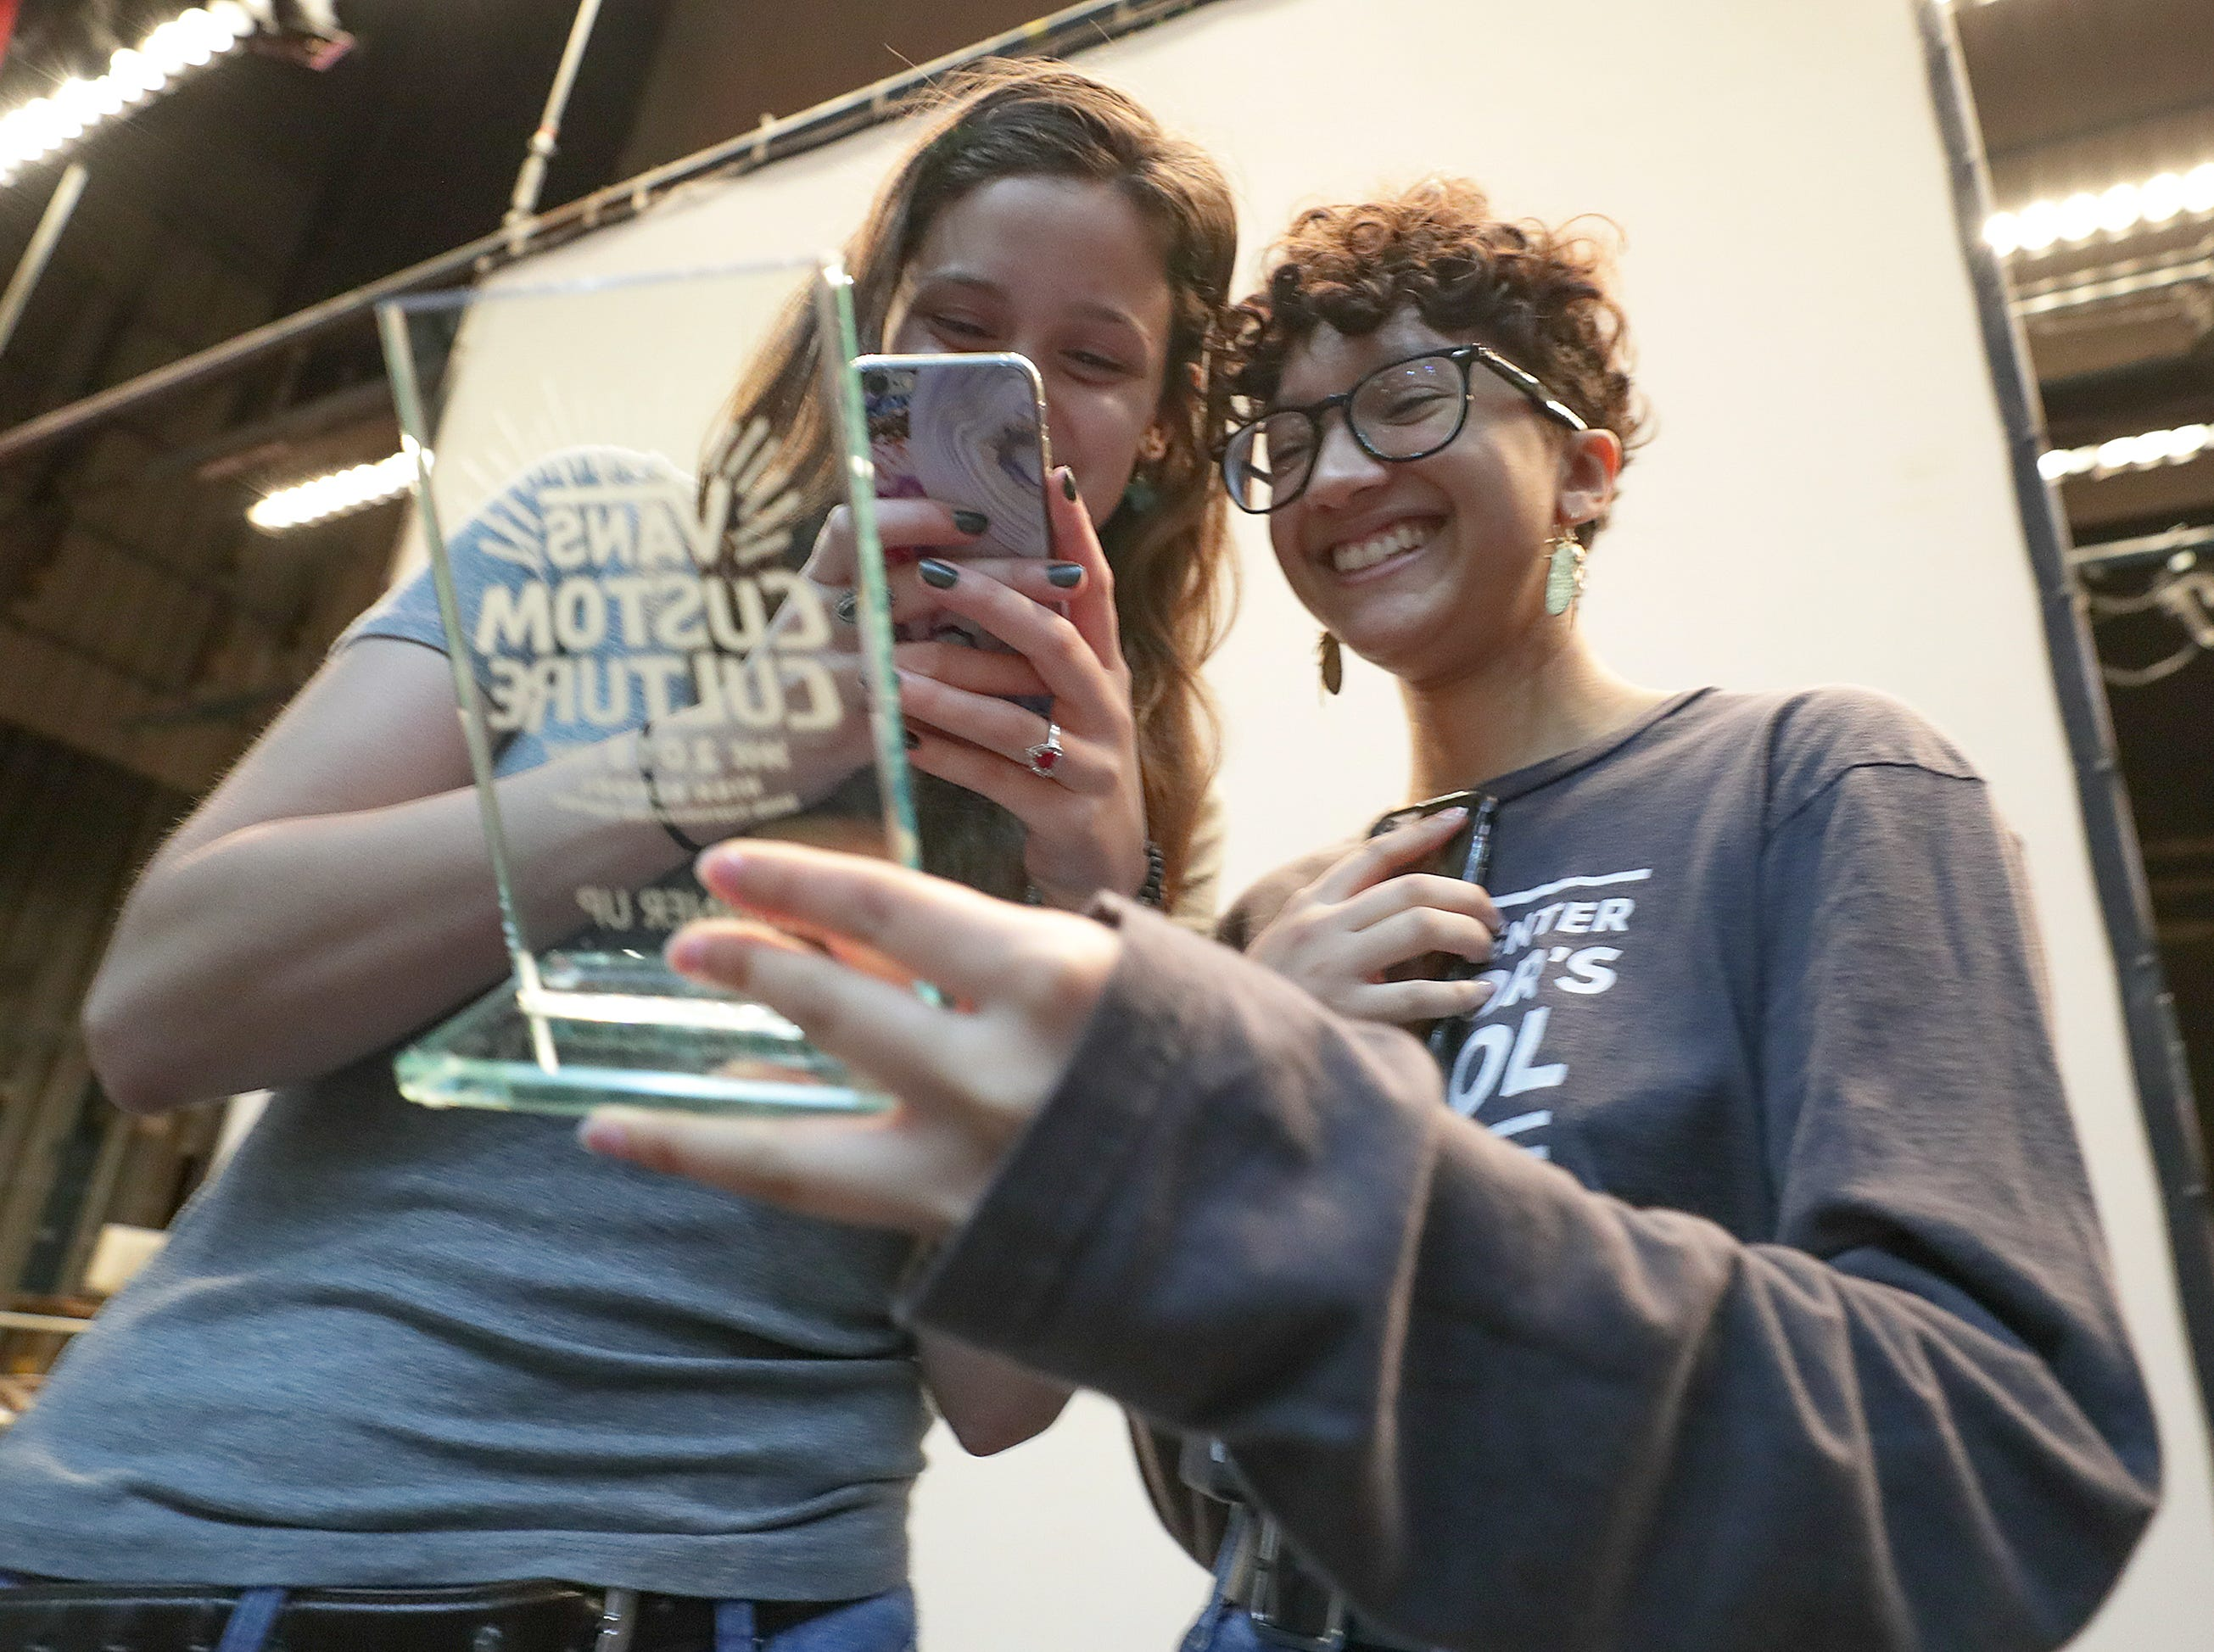 Atherton students Olivia Bunger and Natasha Campbell take photos of a trophy from Vans as part of the Custom Culture contest.  The contest had students use the distinctive footwear to design shoes that depict their state.  Atherton was one of the runner ups and received $10,000 from Vans.May 14, 2019